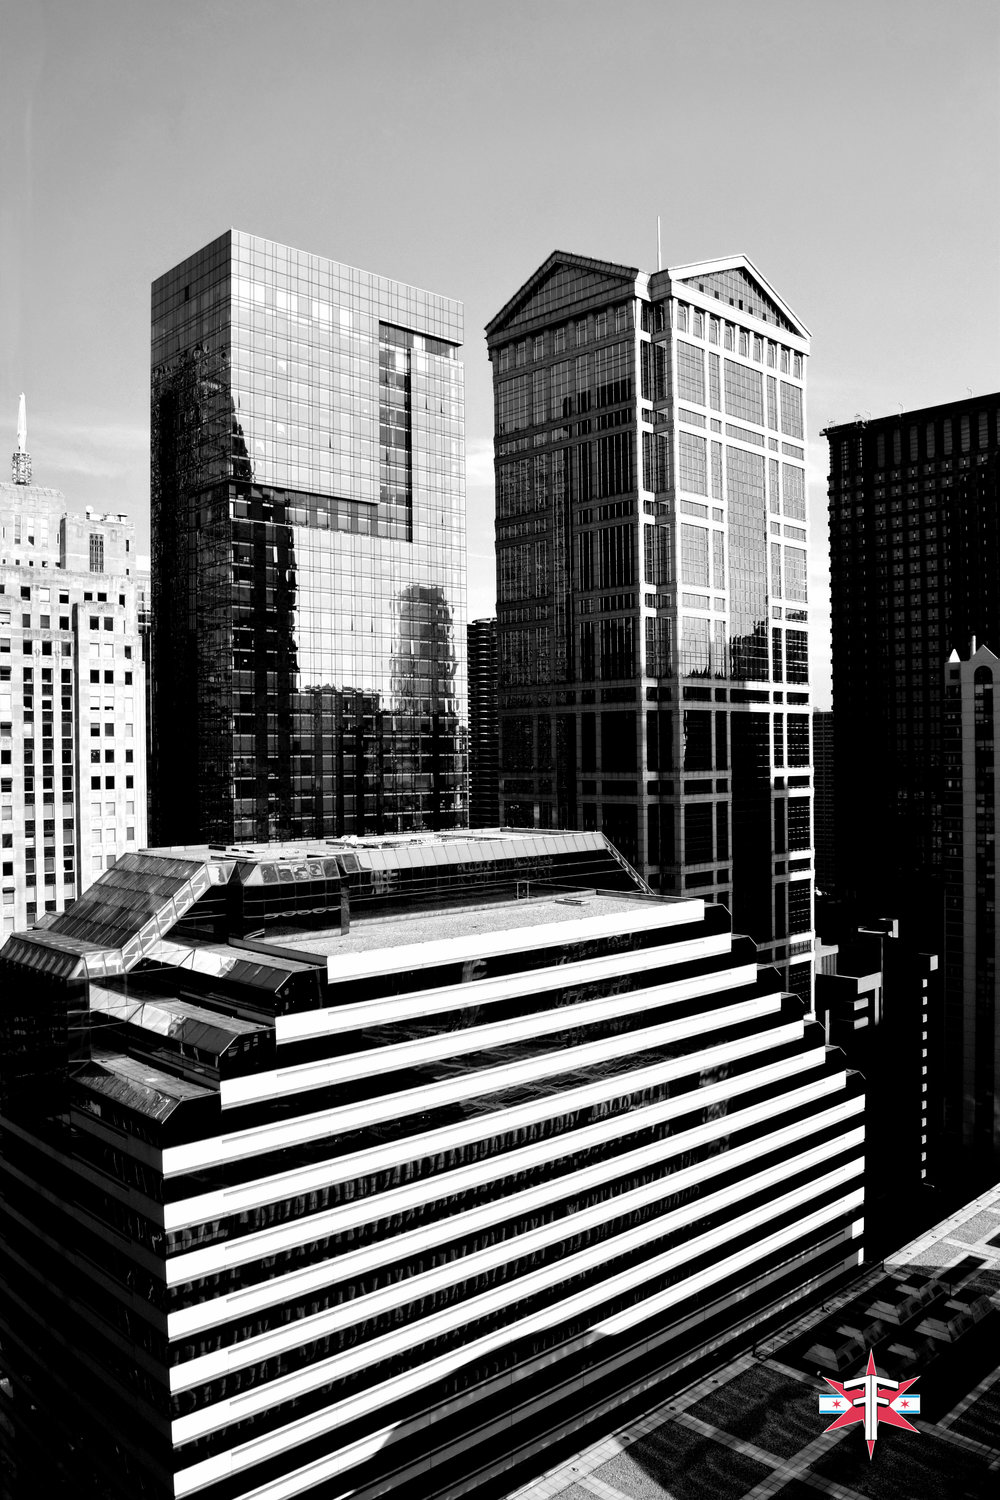 chicago art architecture eric formato photography design arquitectura architettura buildings skyscraper skyscrapers-3.jpg